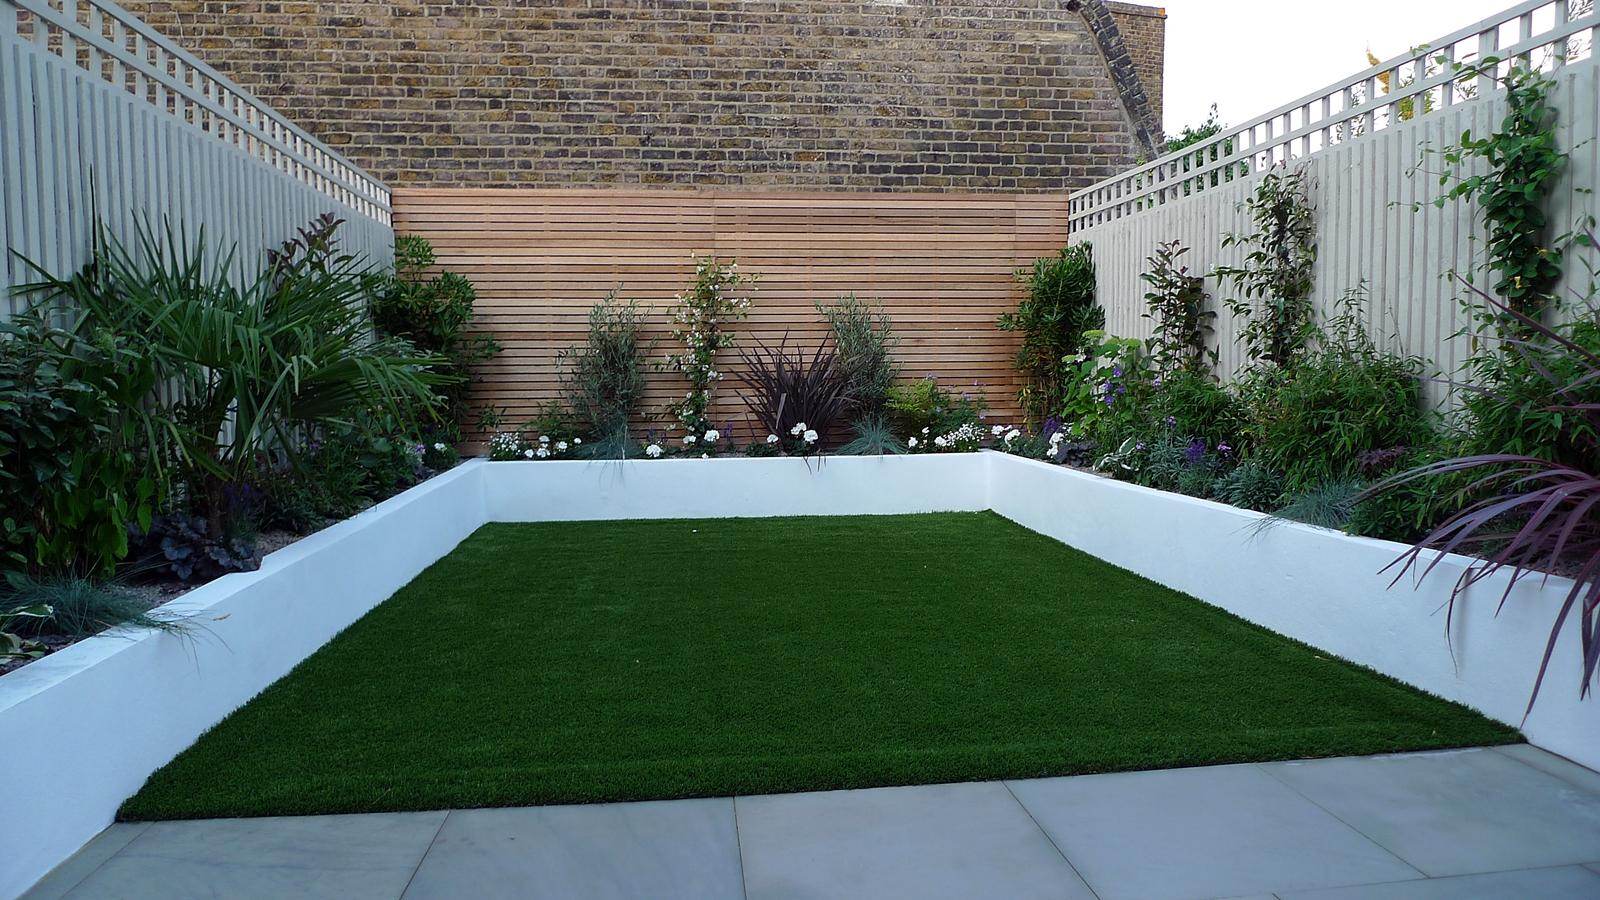 Sawn archives london garden blog for Small garden design pictures gallery